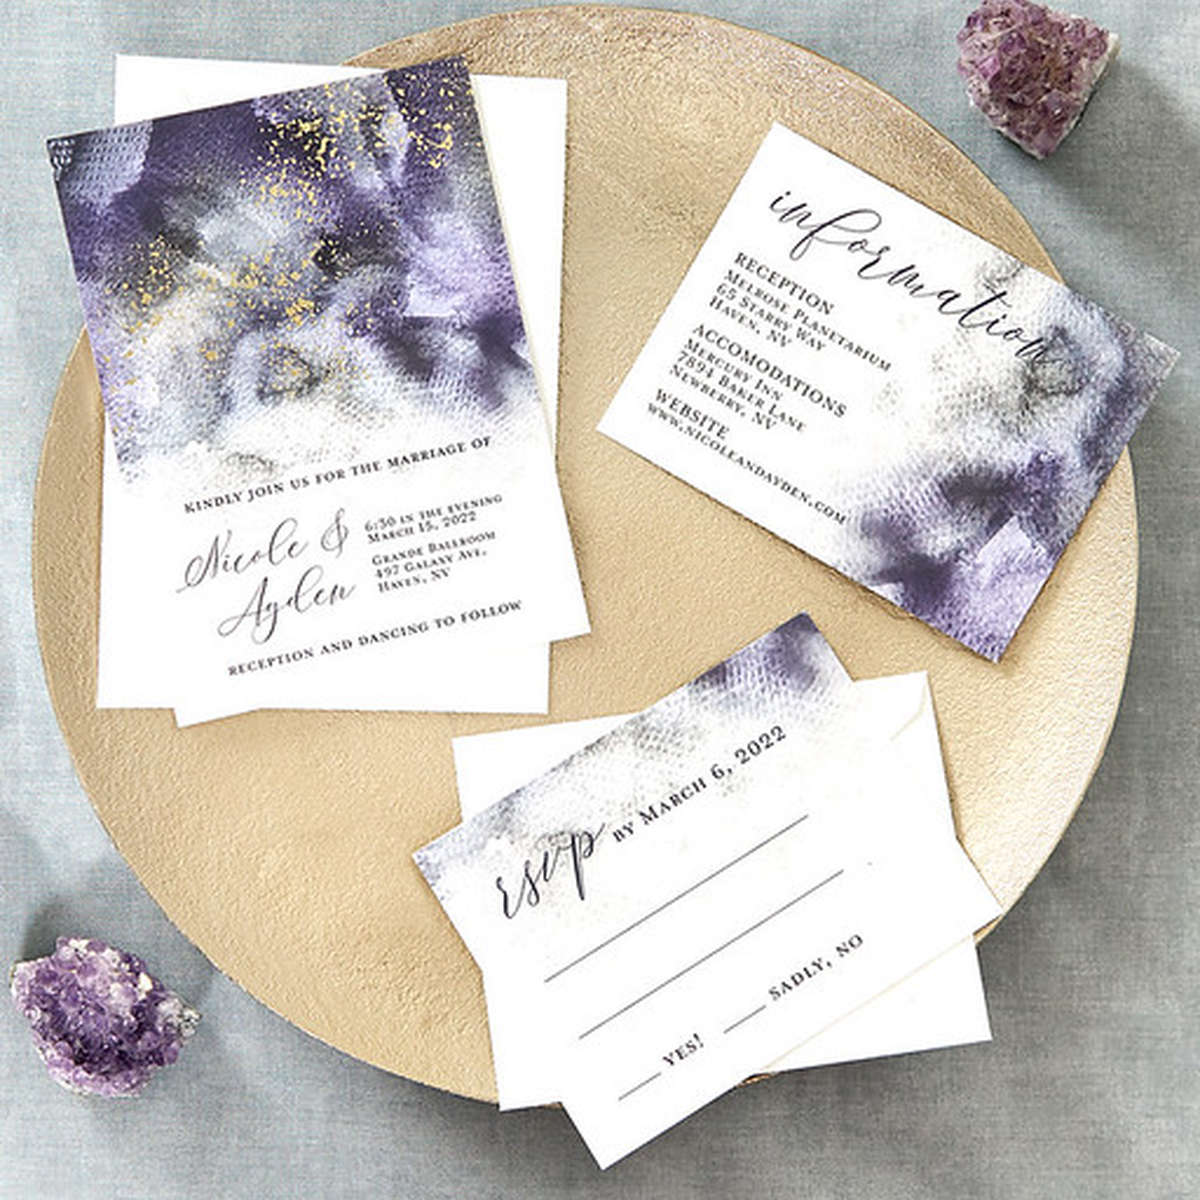 Our Top 10 Must Haves For Every Wedding For Your Party